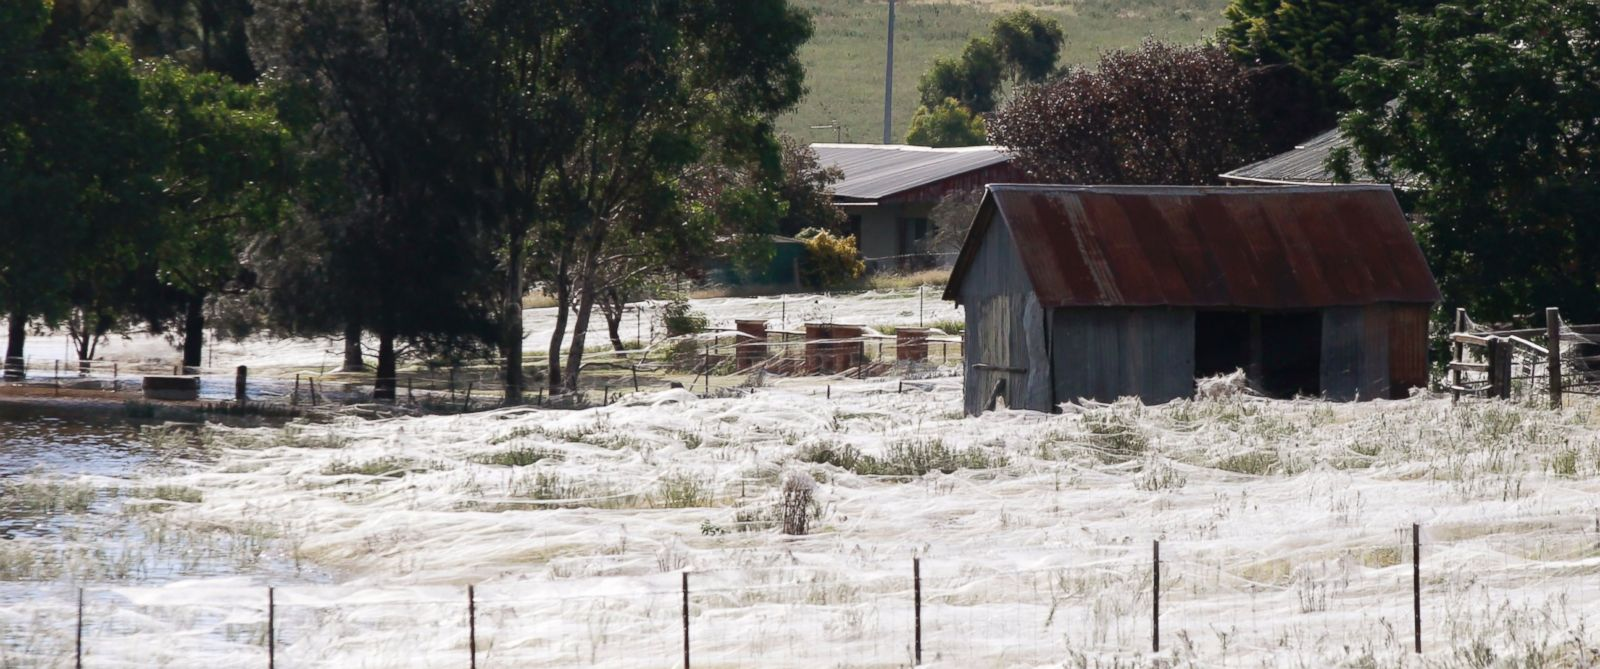 PHOTO: A house is surrounded by spiderwebs next to flood waters in Wagga Wagga, Australia on March 6, 2012.